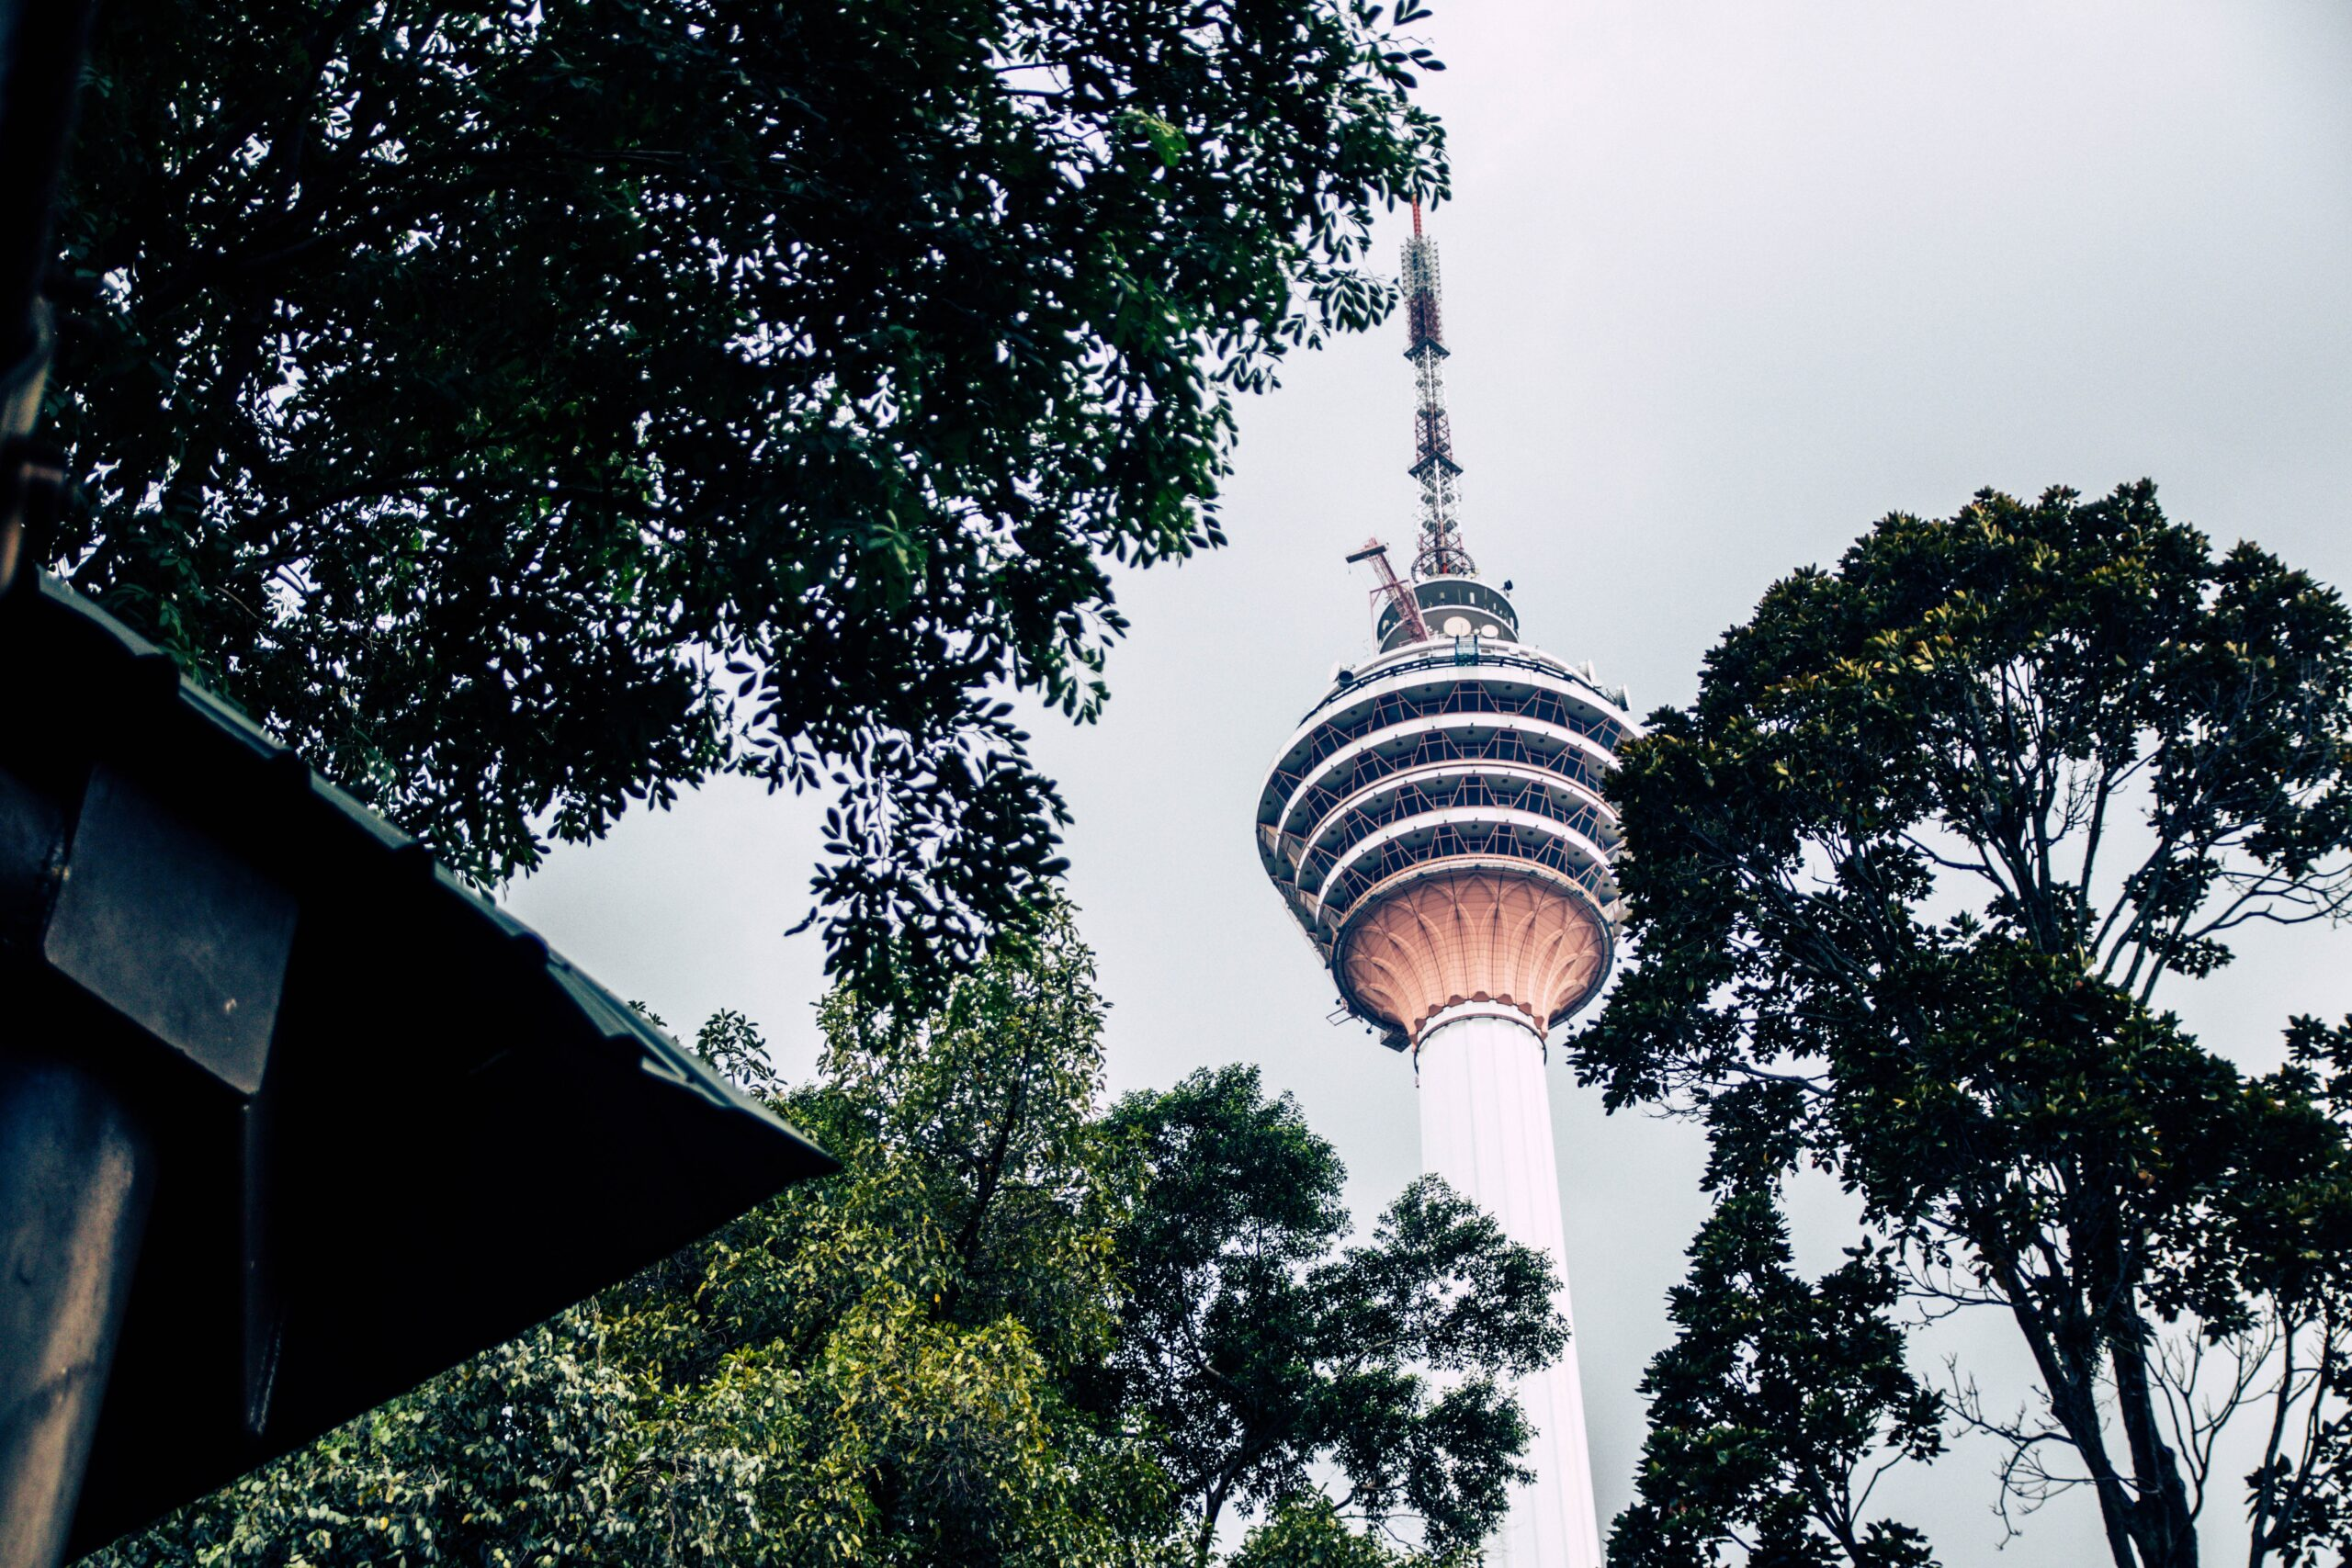 One of the things to do in Kuala Lumpur is to visit the KL Tower